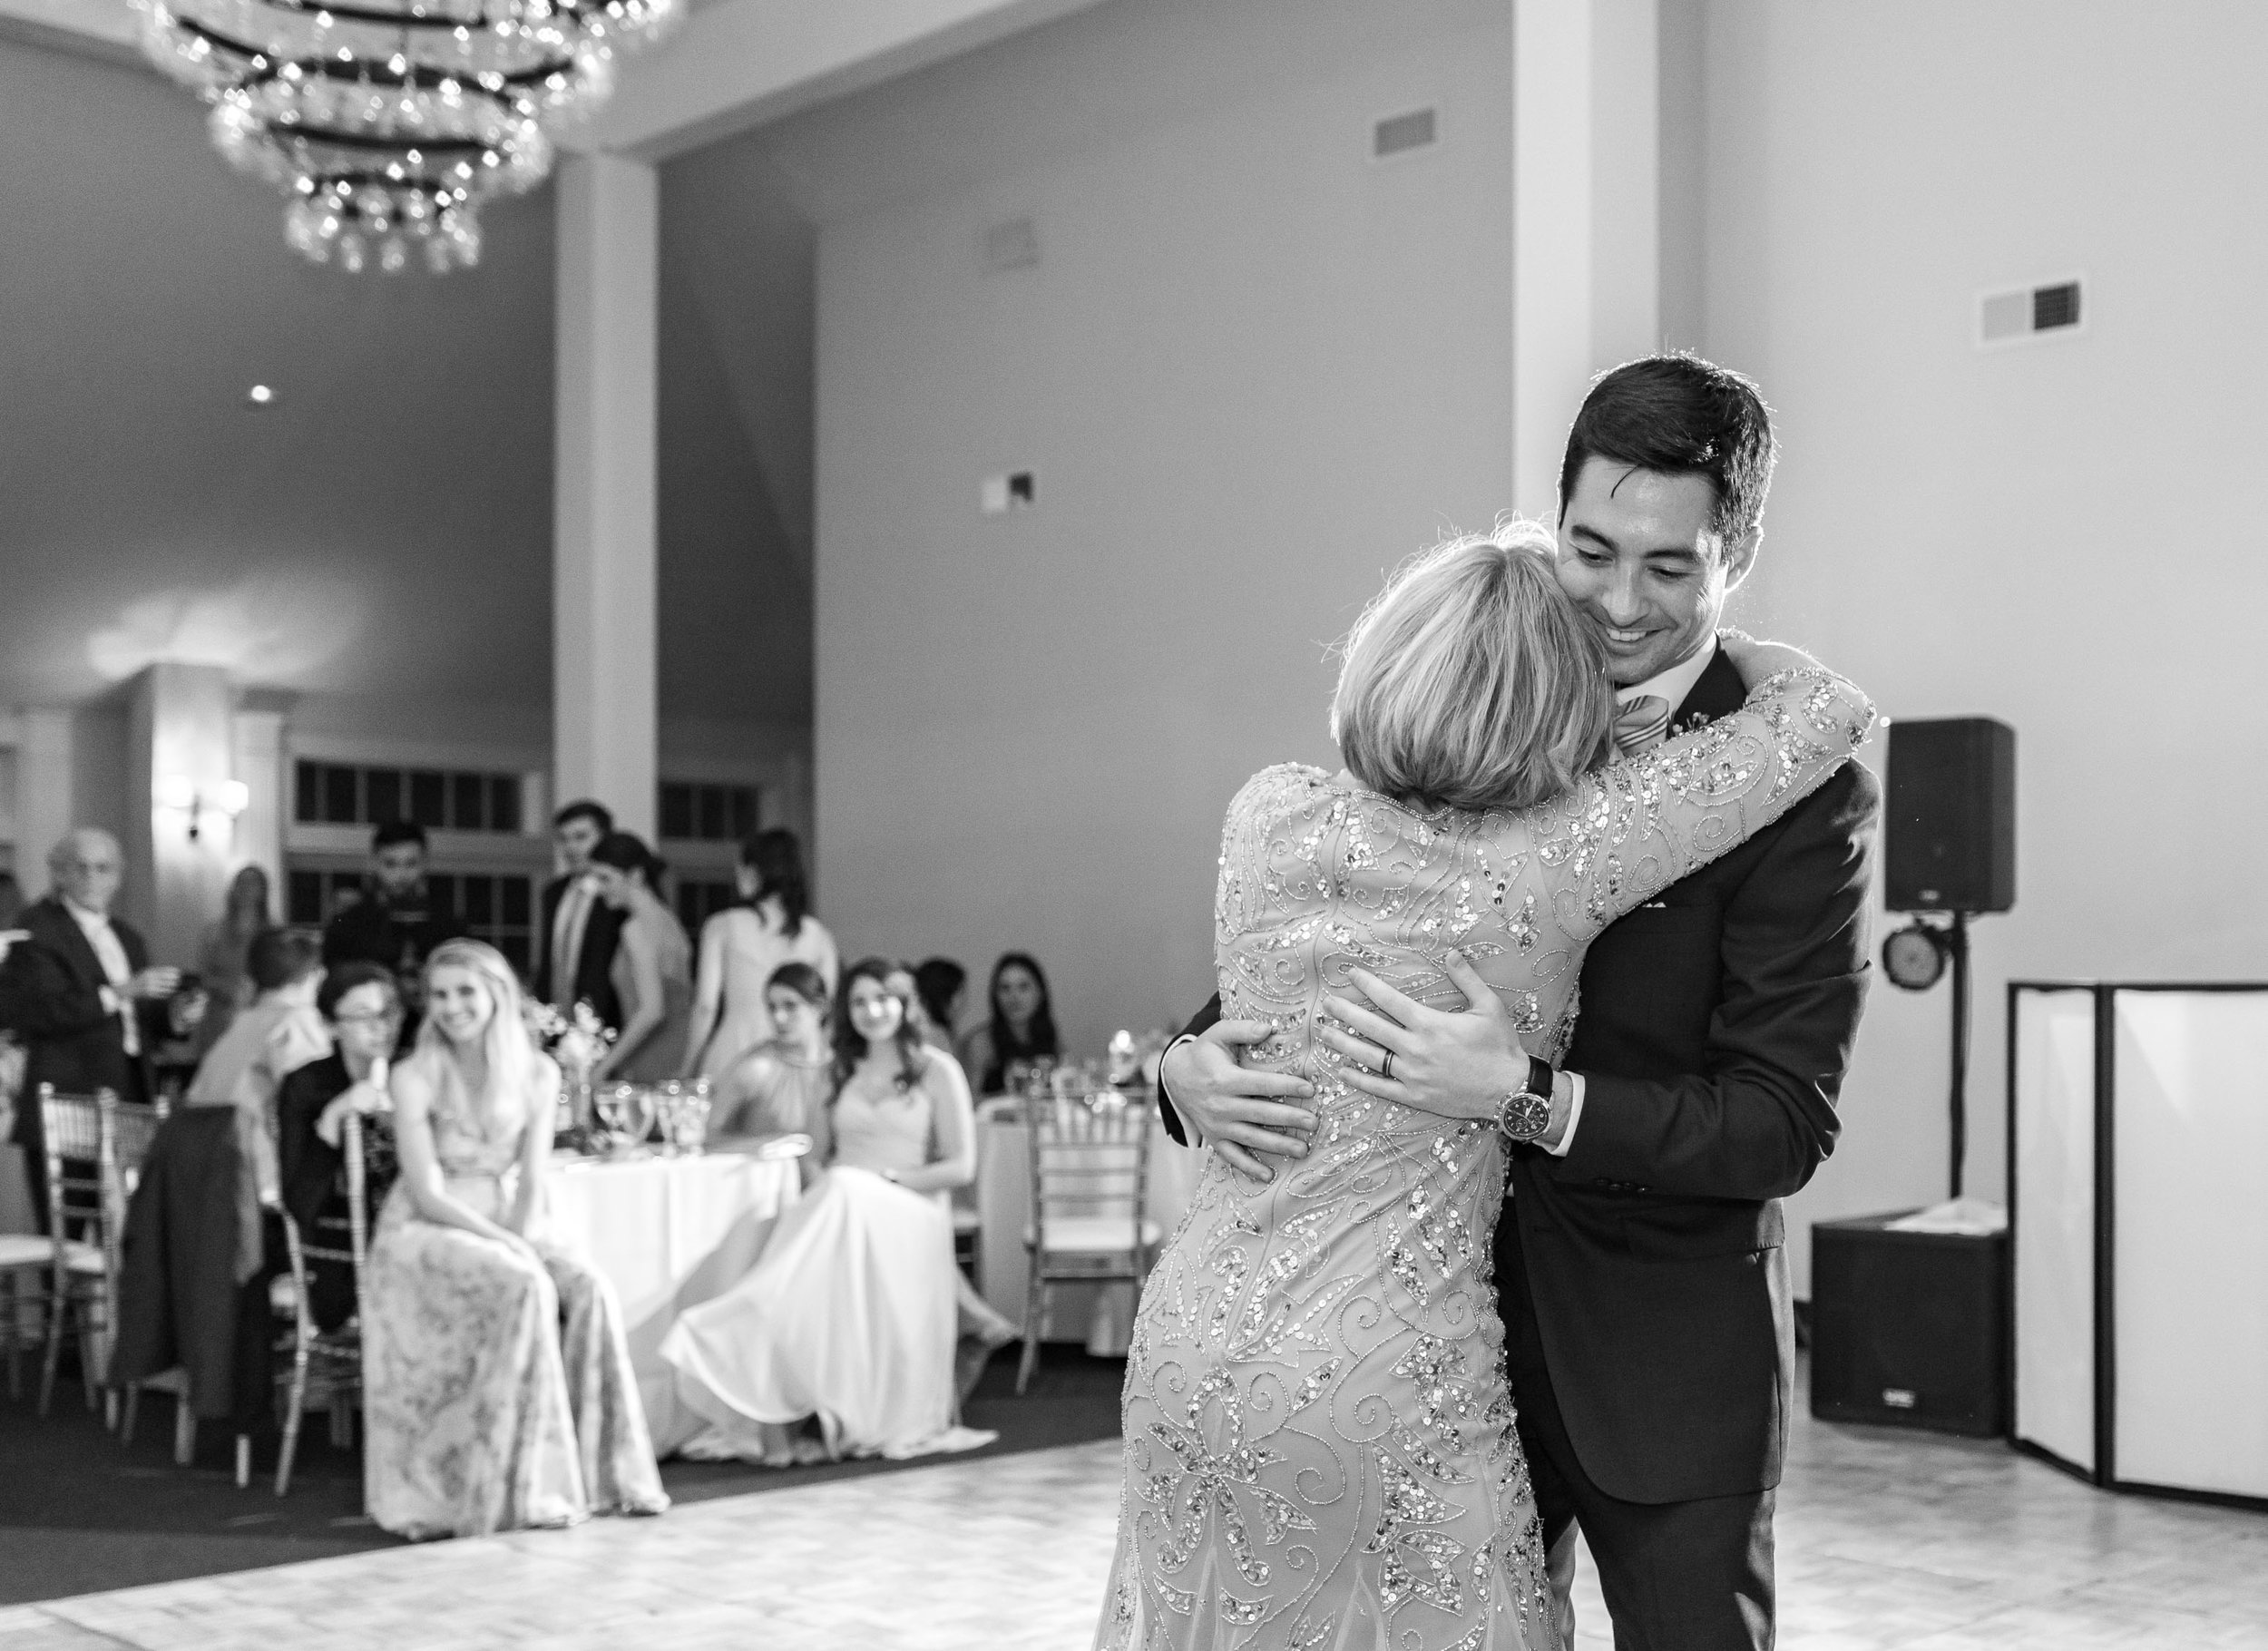 Mother Son dance with dramatic flash during wedding reception